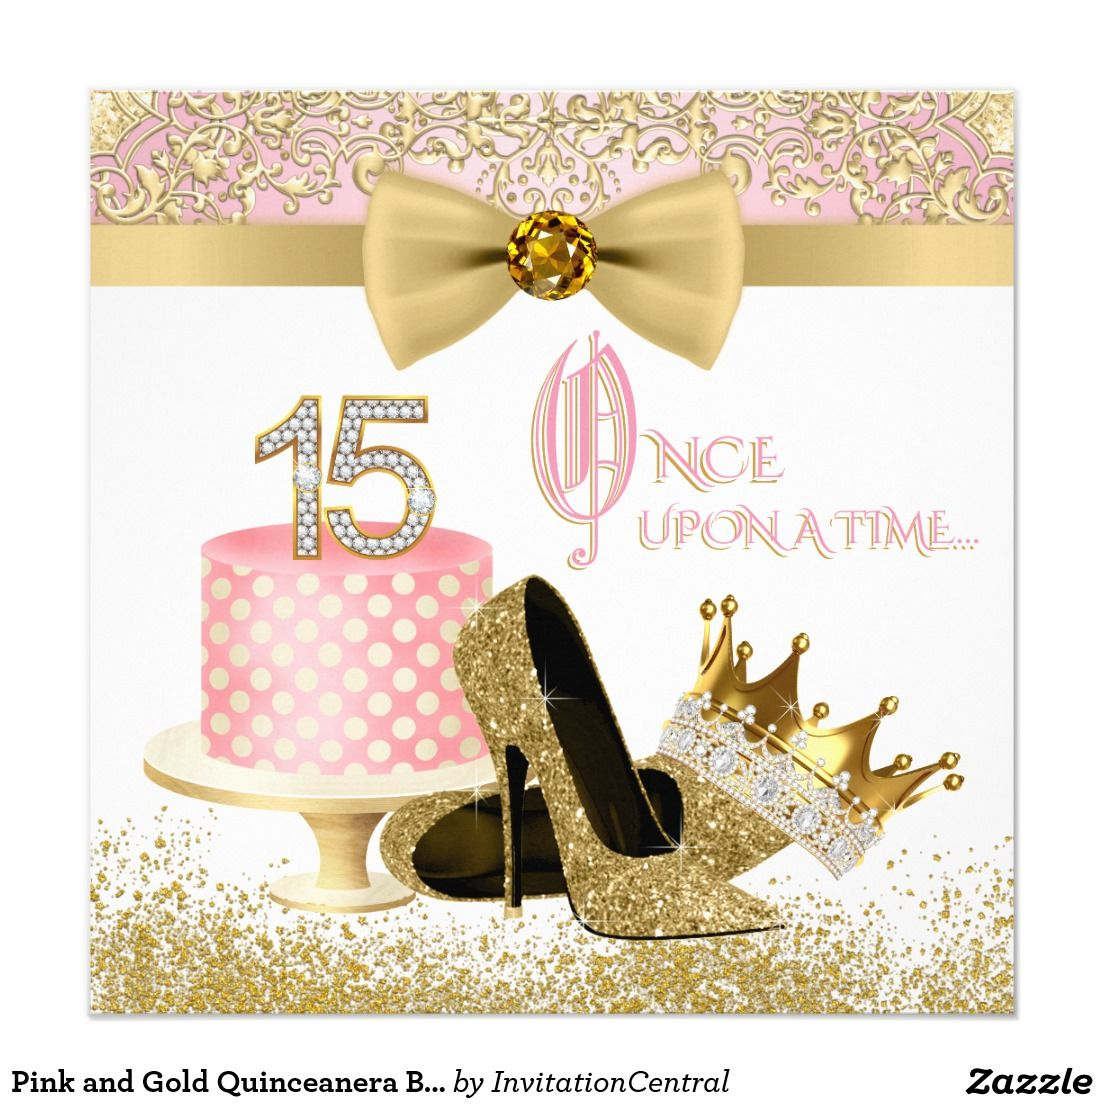 Pink and gold quinceanera birthday party card quinceaera pink and gold quinceanera birthday party card m4hsunfo